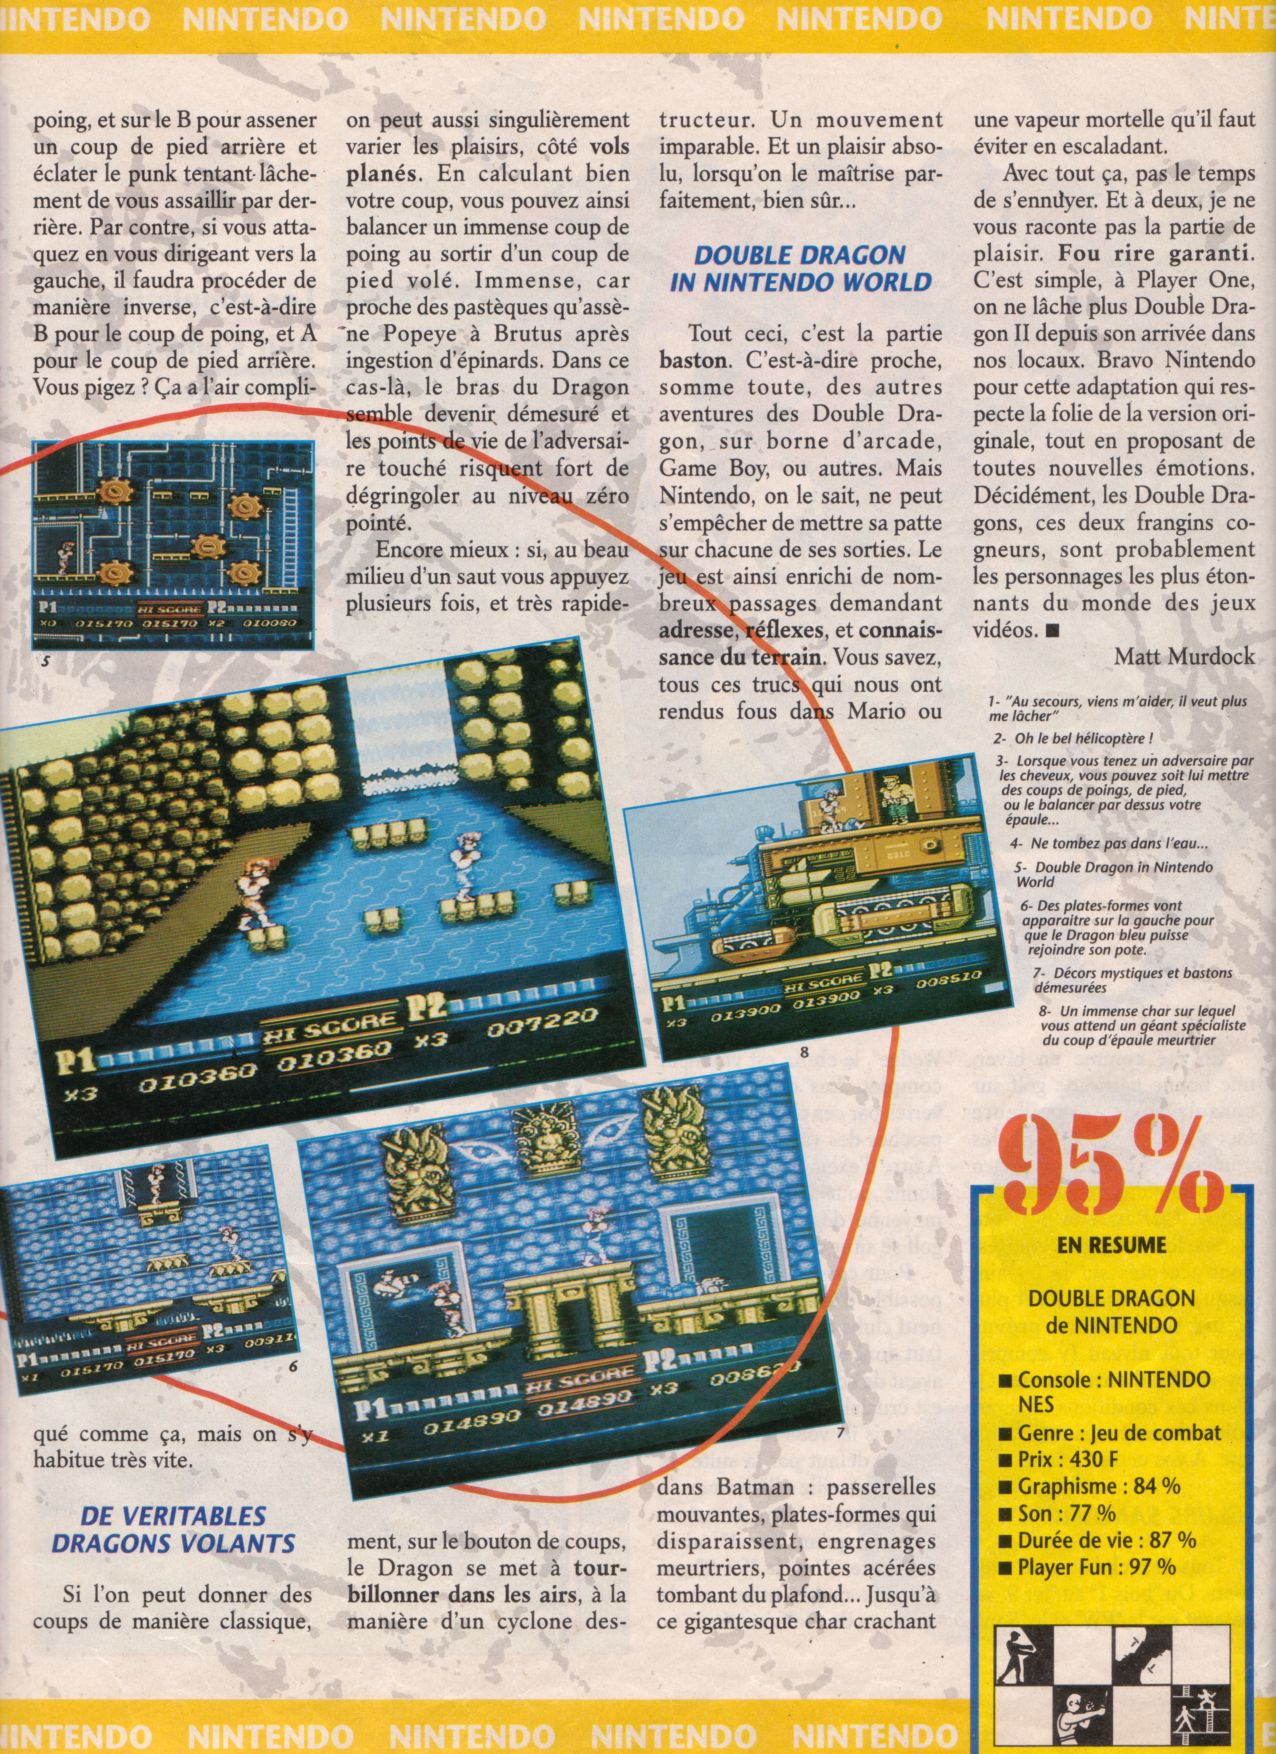 [Jeux]   DOUBLE DRAGON II (NES) 1989. Player%20One%20003%20-%20Page%20029%20(1990-11)